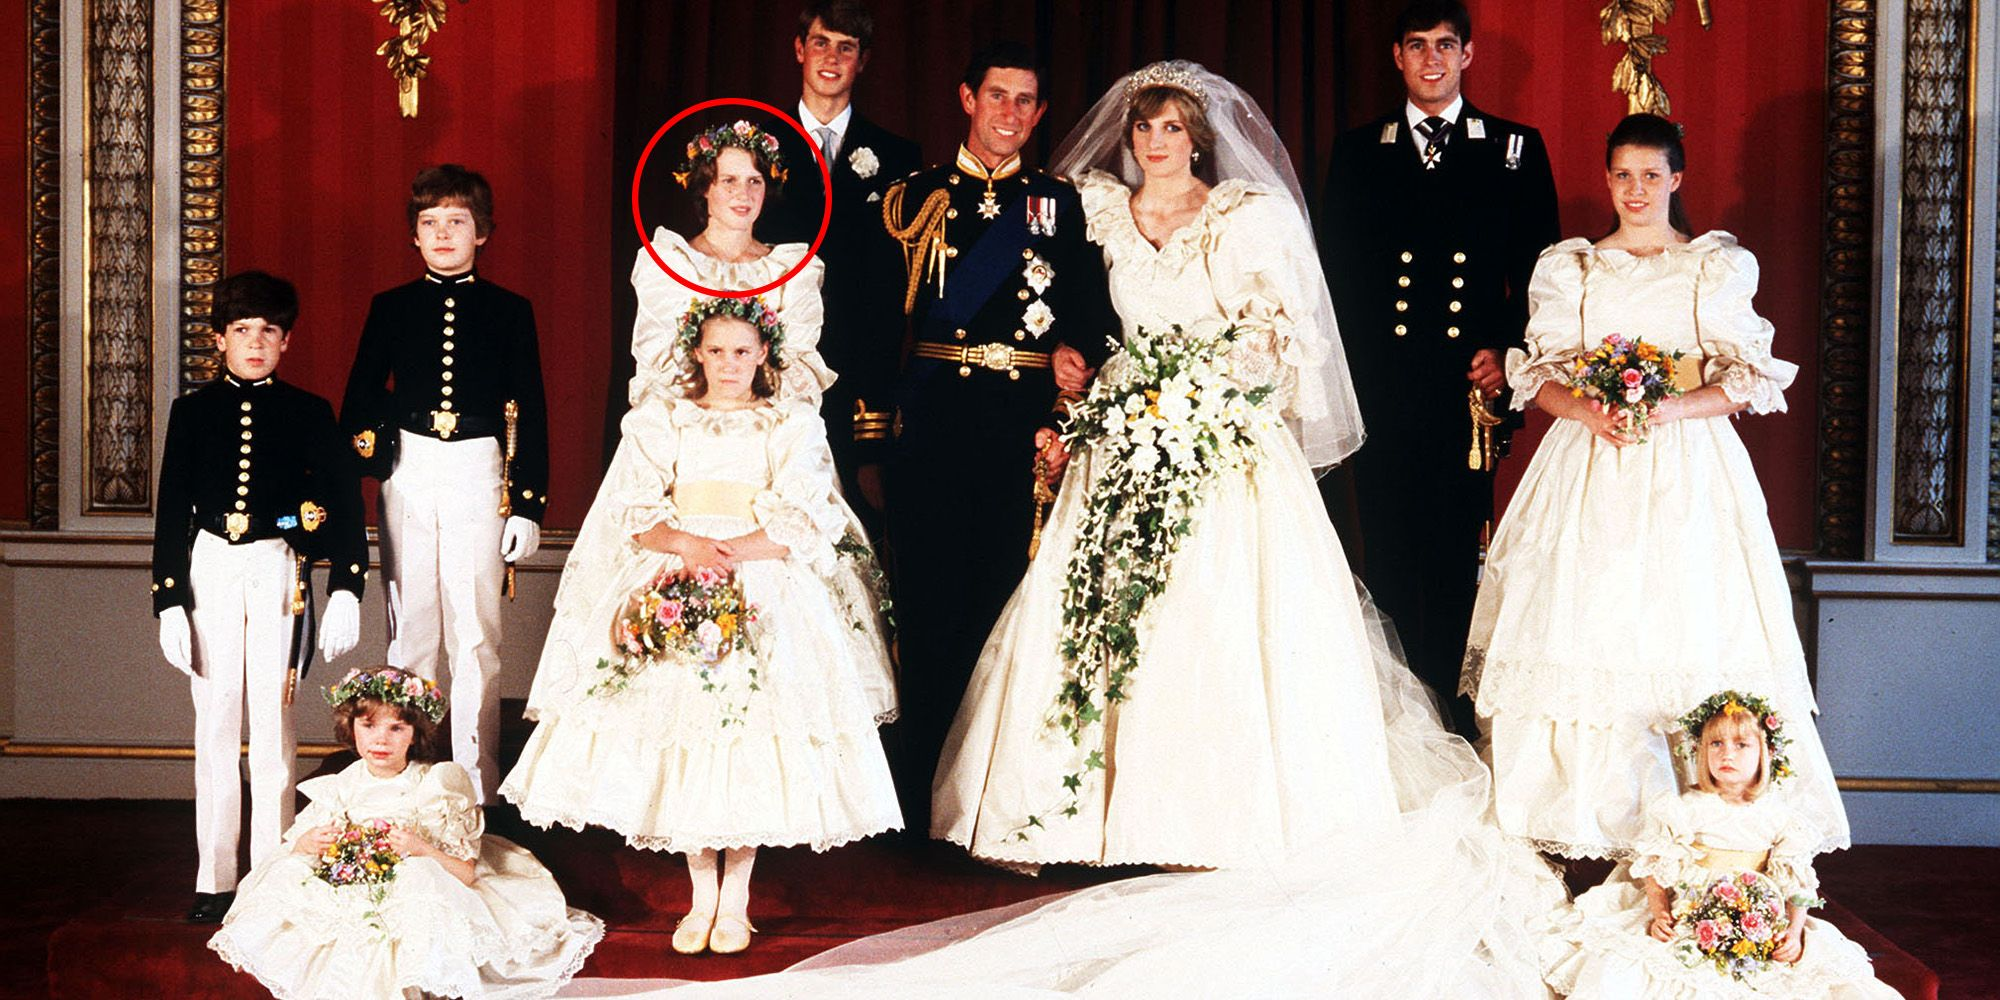 Princess Diana S Wedding India Hicks At Princess Diana S Wedding